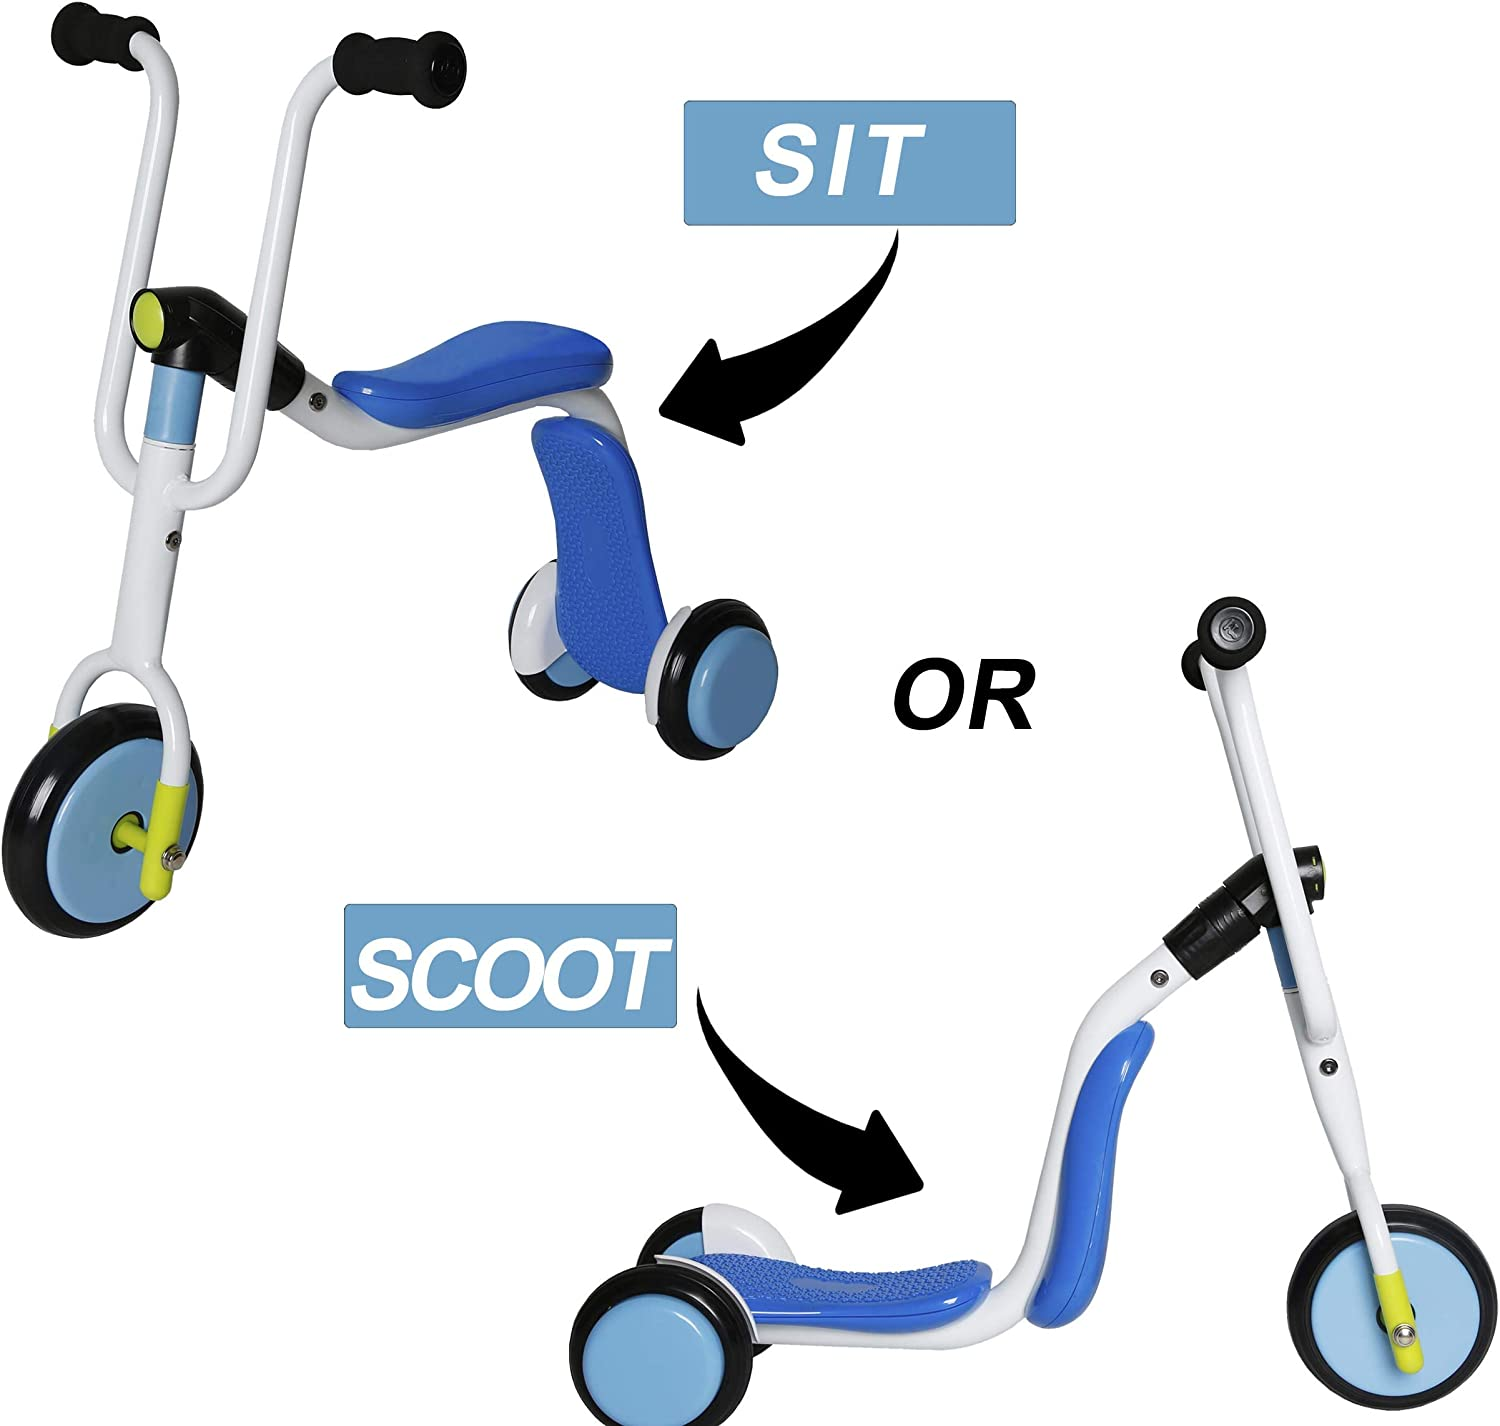 UHINOOS Kick Scooter 3 Wheel Toddler Scooter Easy Adjustable Transform Kick Scooter to Balance Trike for Kids 2 to 5 Years Old Boys and Girls (bluee)